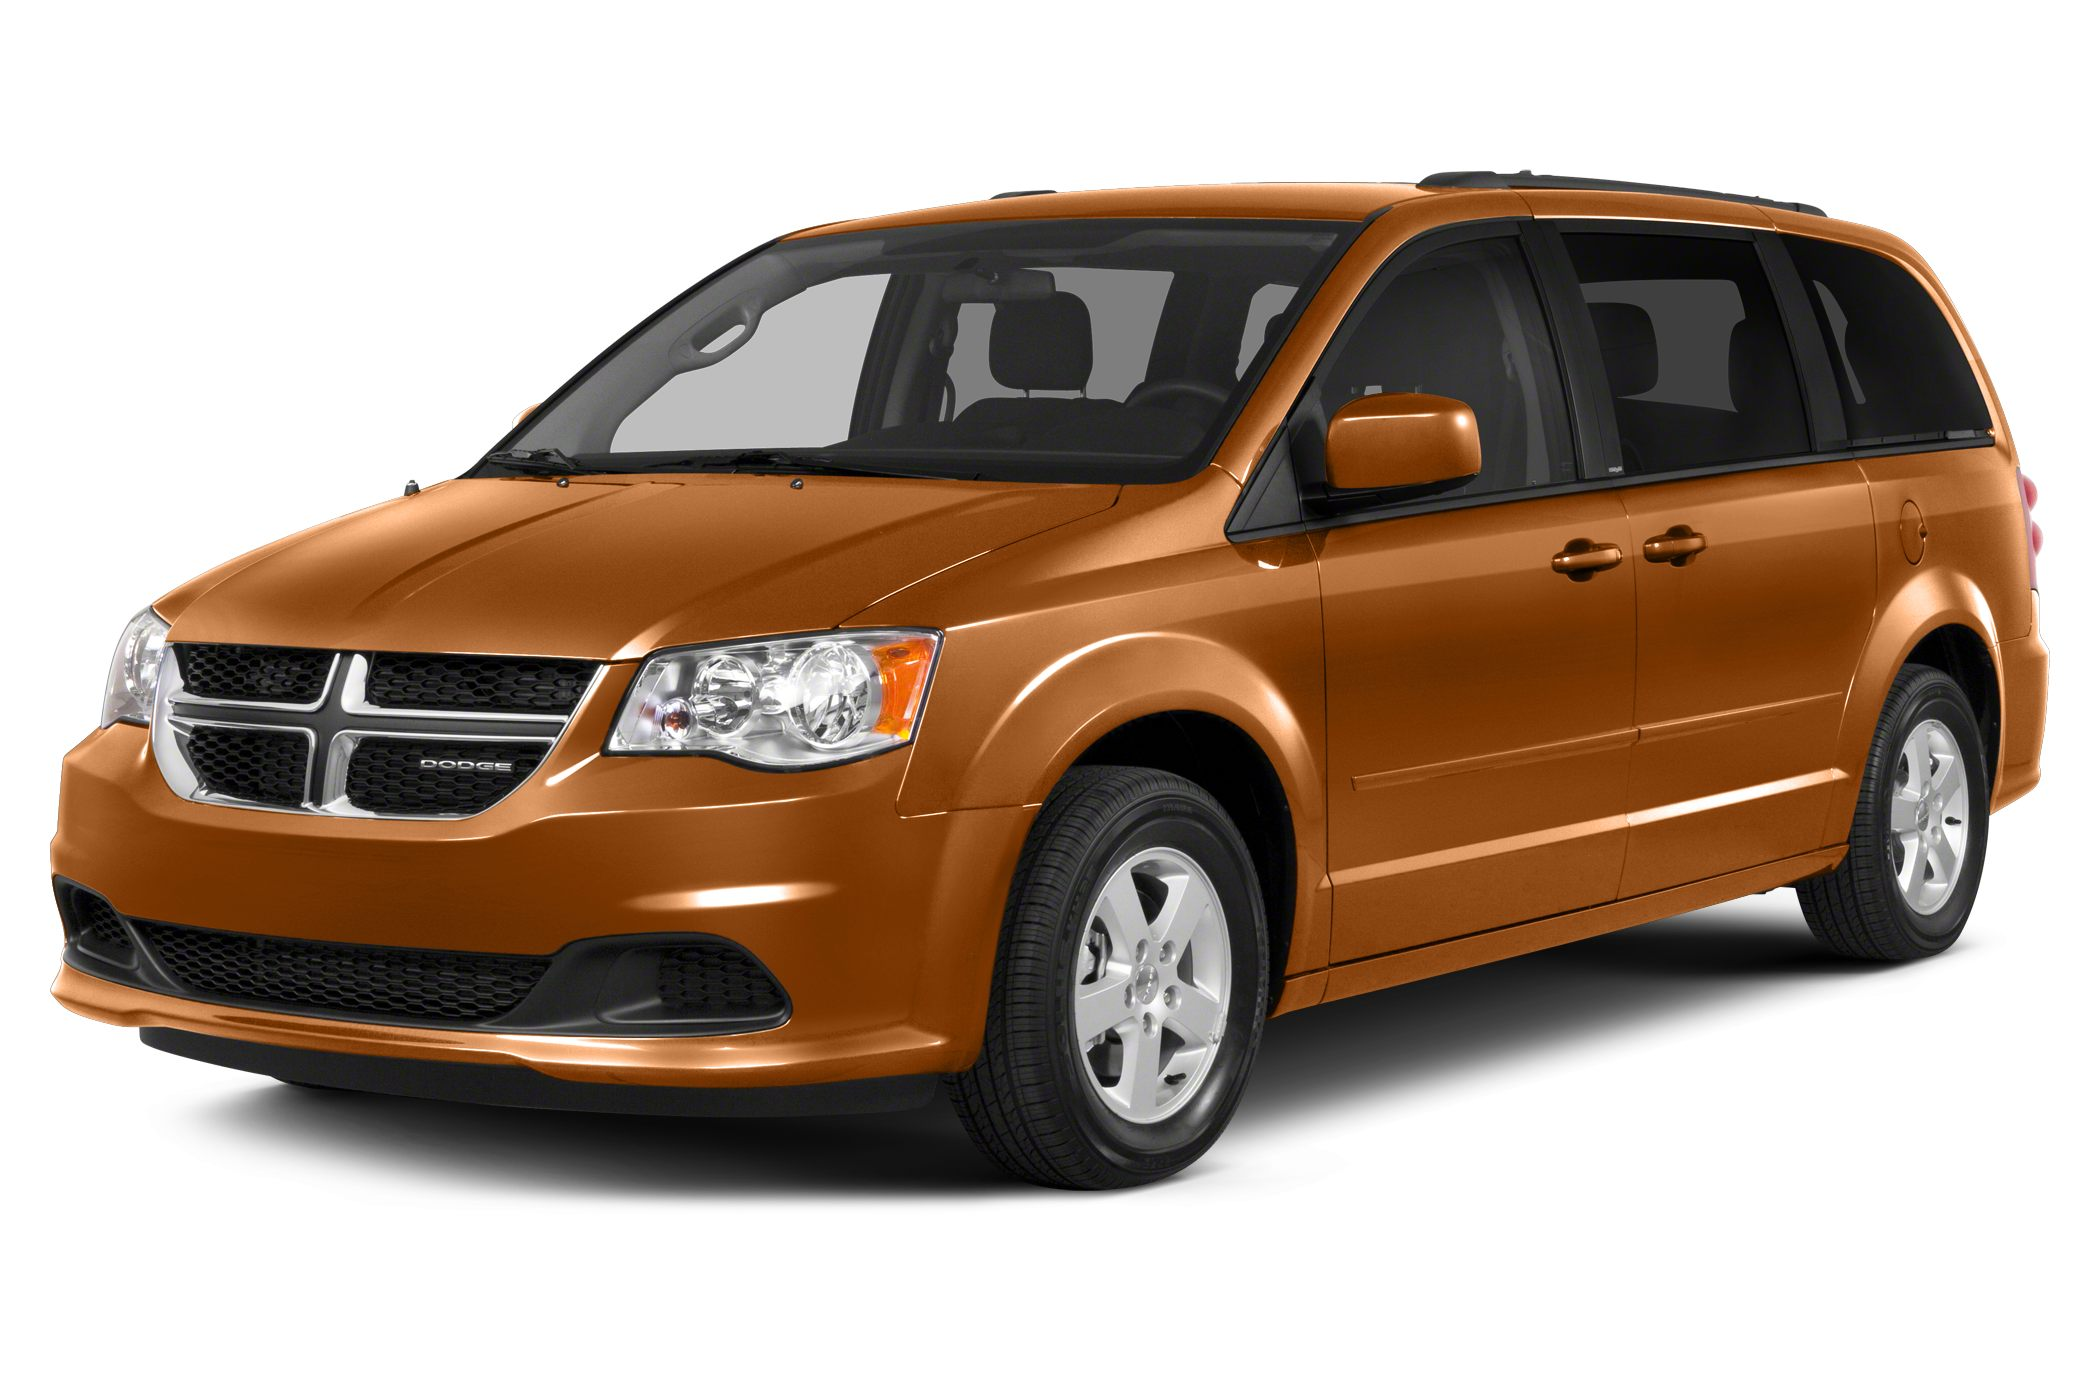 2015 Dodge Grand Caravan SXT FUEL EFFICIENT 25 MPG Hwy17 MPG City CARFAX 1-Owner 3rd Row Seat